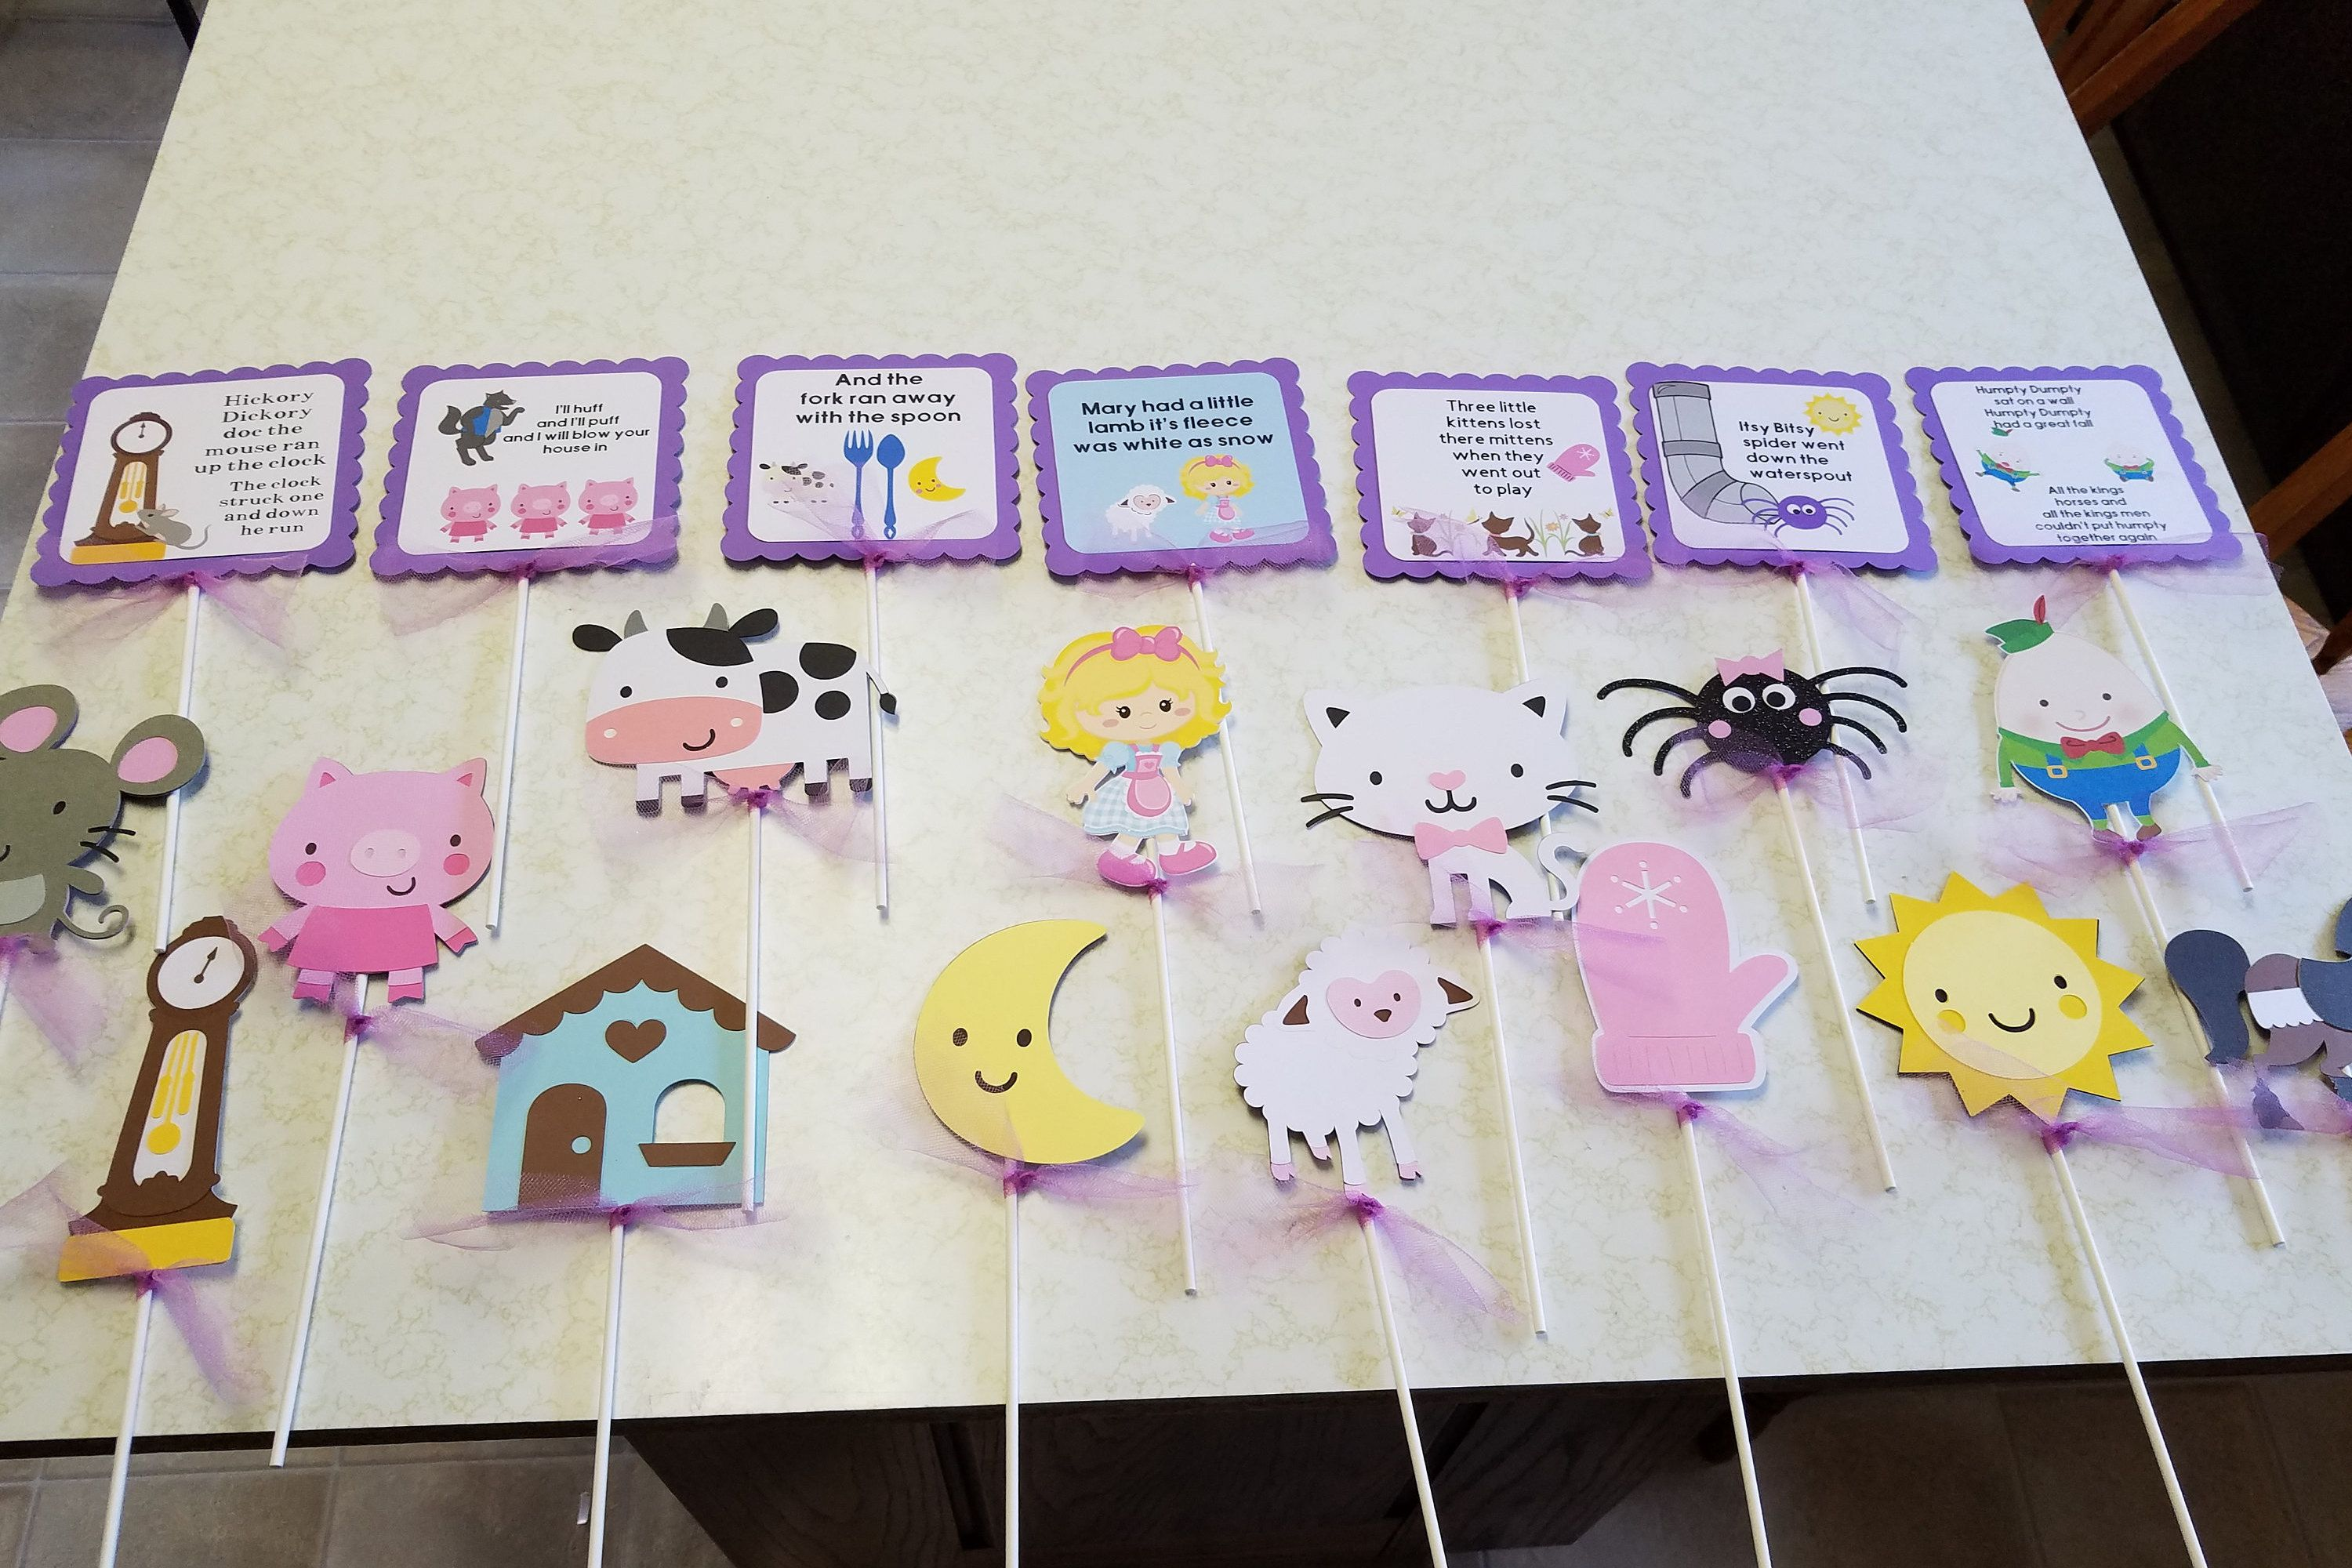 Nursery Rhyme Centerpiece Sticks Nursery Rhyme Happy Birthday Banner Nursery Rhyme Baby Shower Decorations Nursery Rhyme Party Nursery Rhyme Party Baby First Birthday Party Themes For Boys